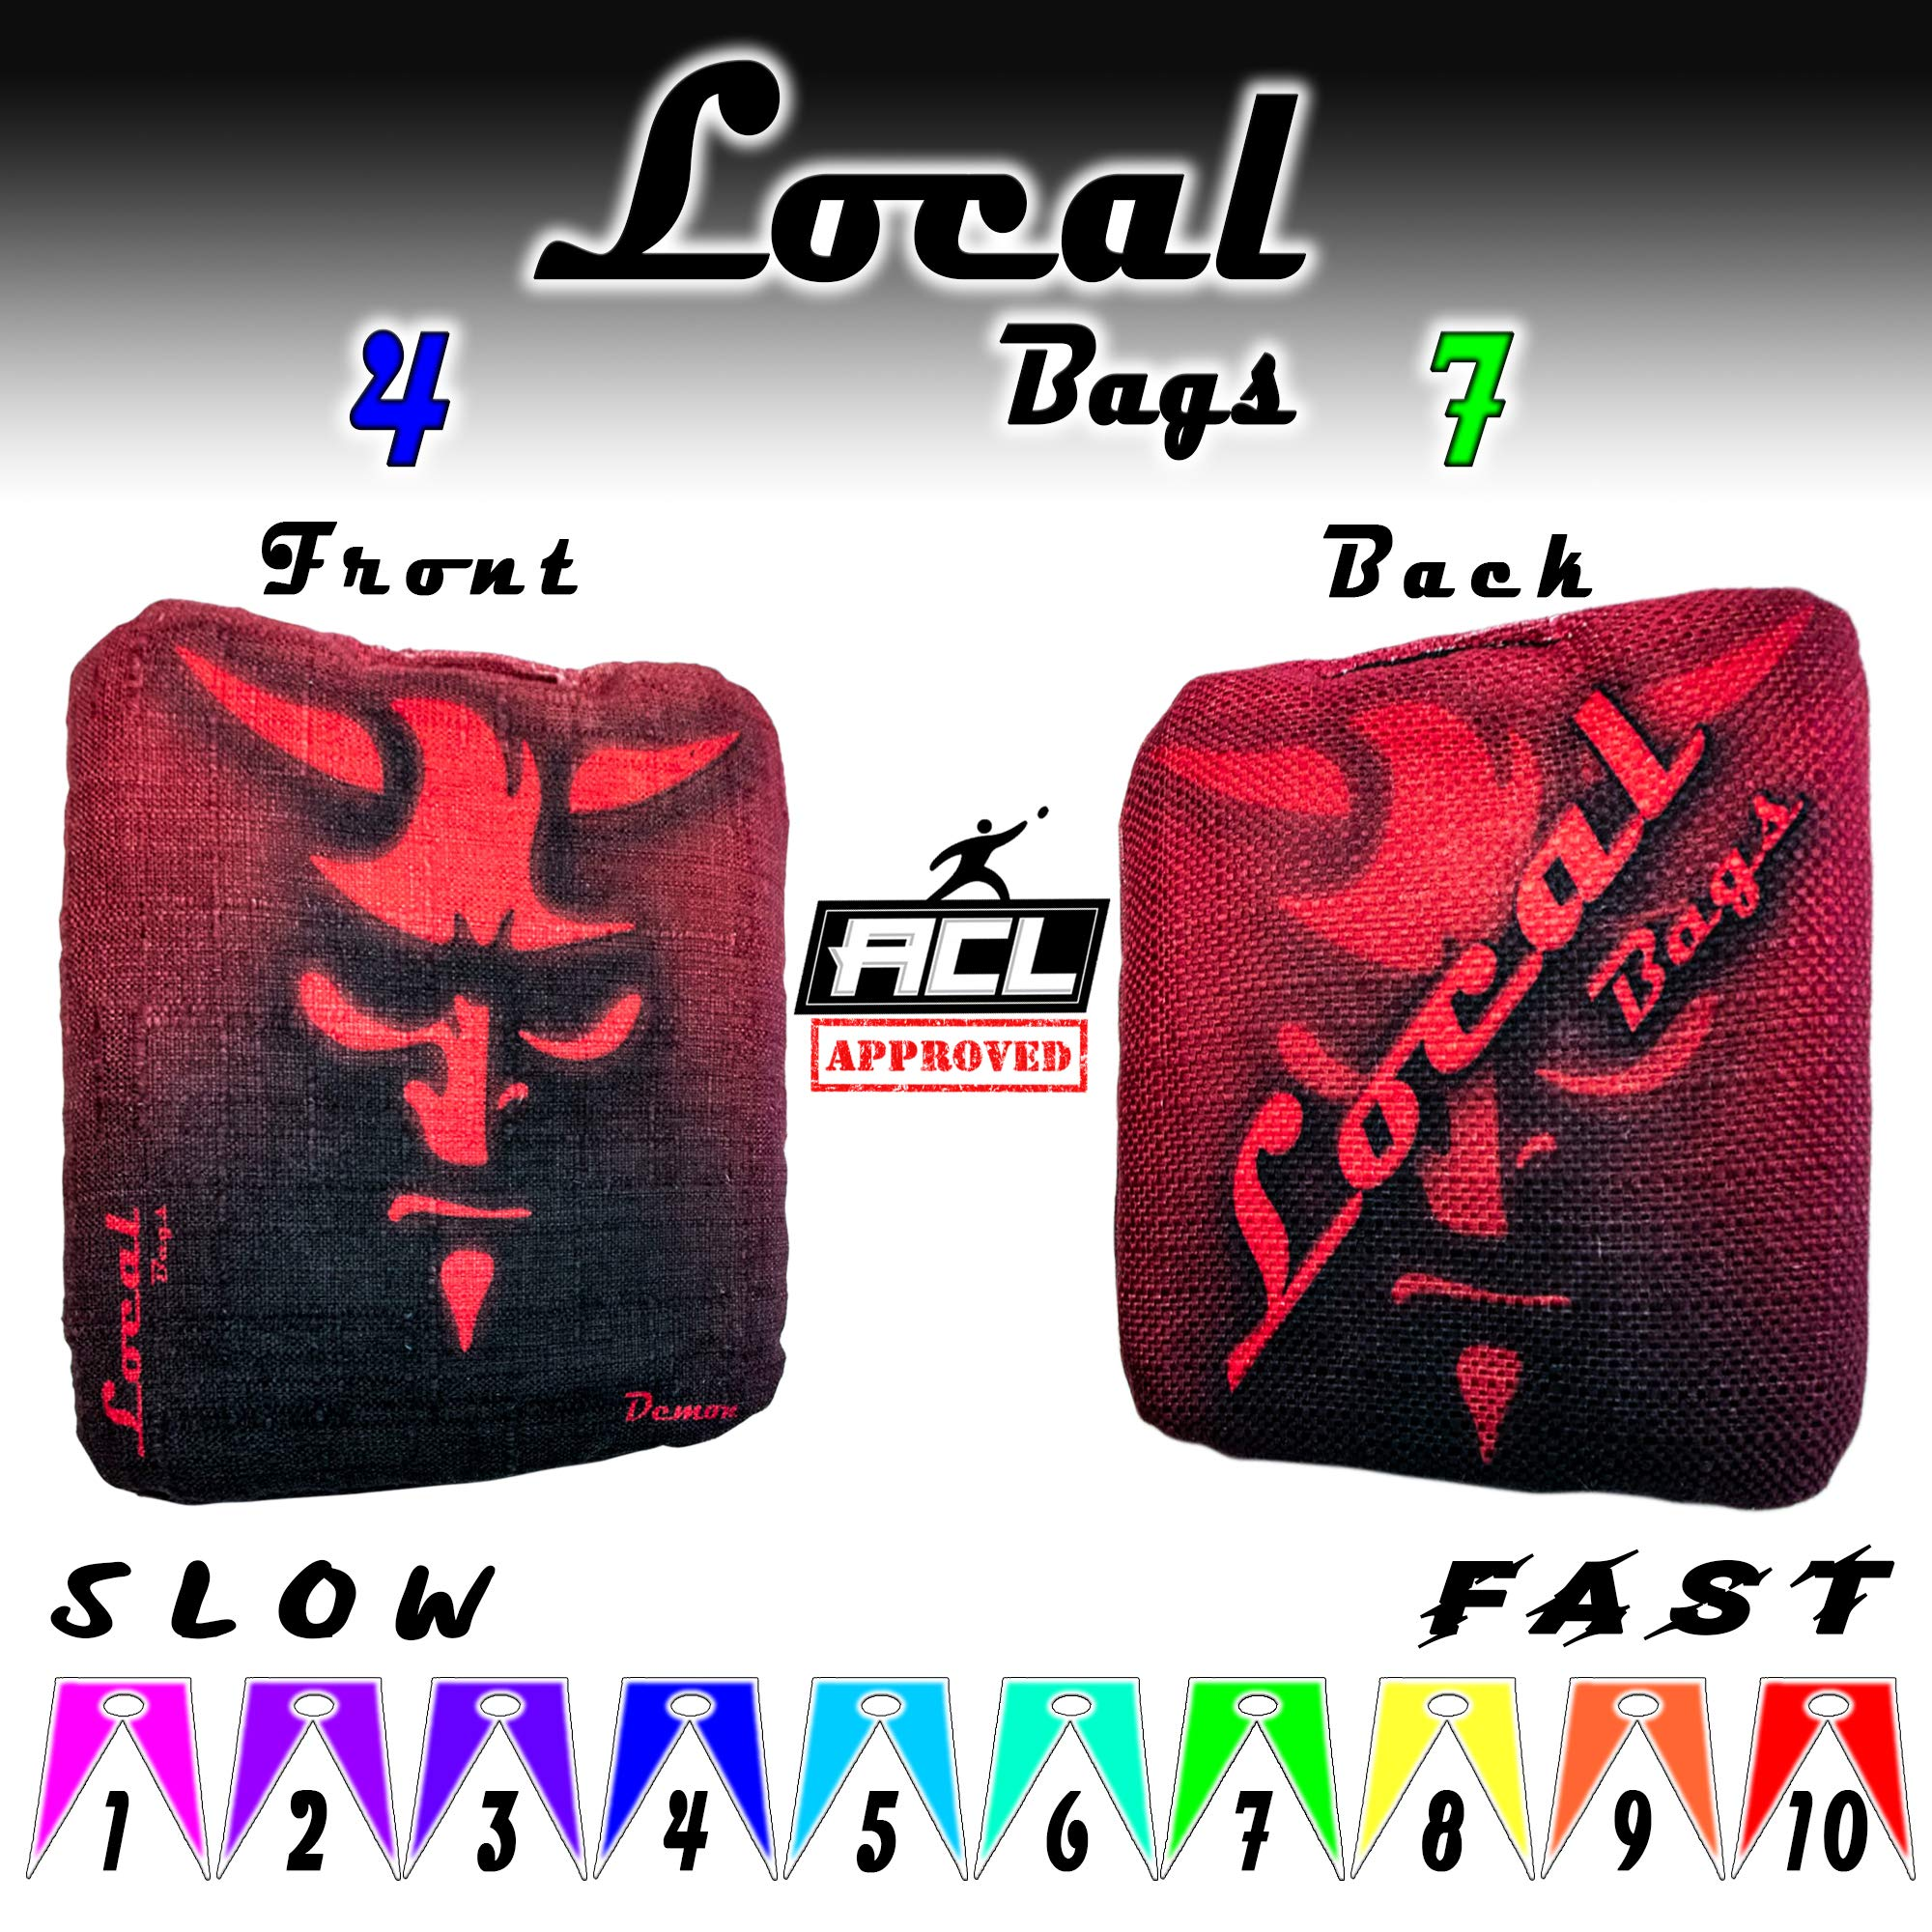 Local Bags Cornhole Outlaws Series Double Sided Set of 4 Bags- ACL Approved Resin Filled Slow Side//Go Side Made in USA